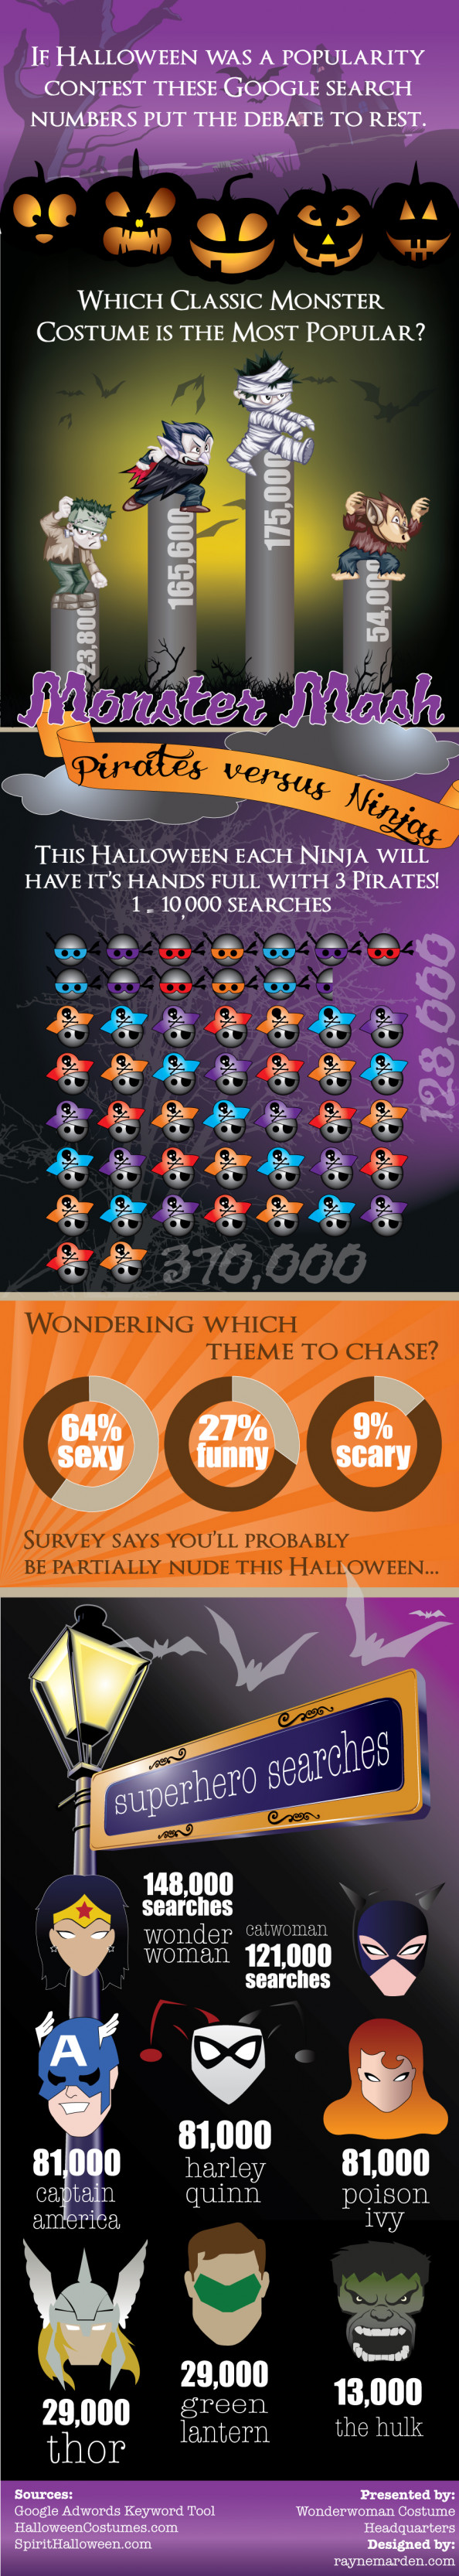 Most Searched For Halloween Costumes Infographic